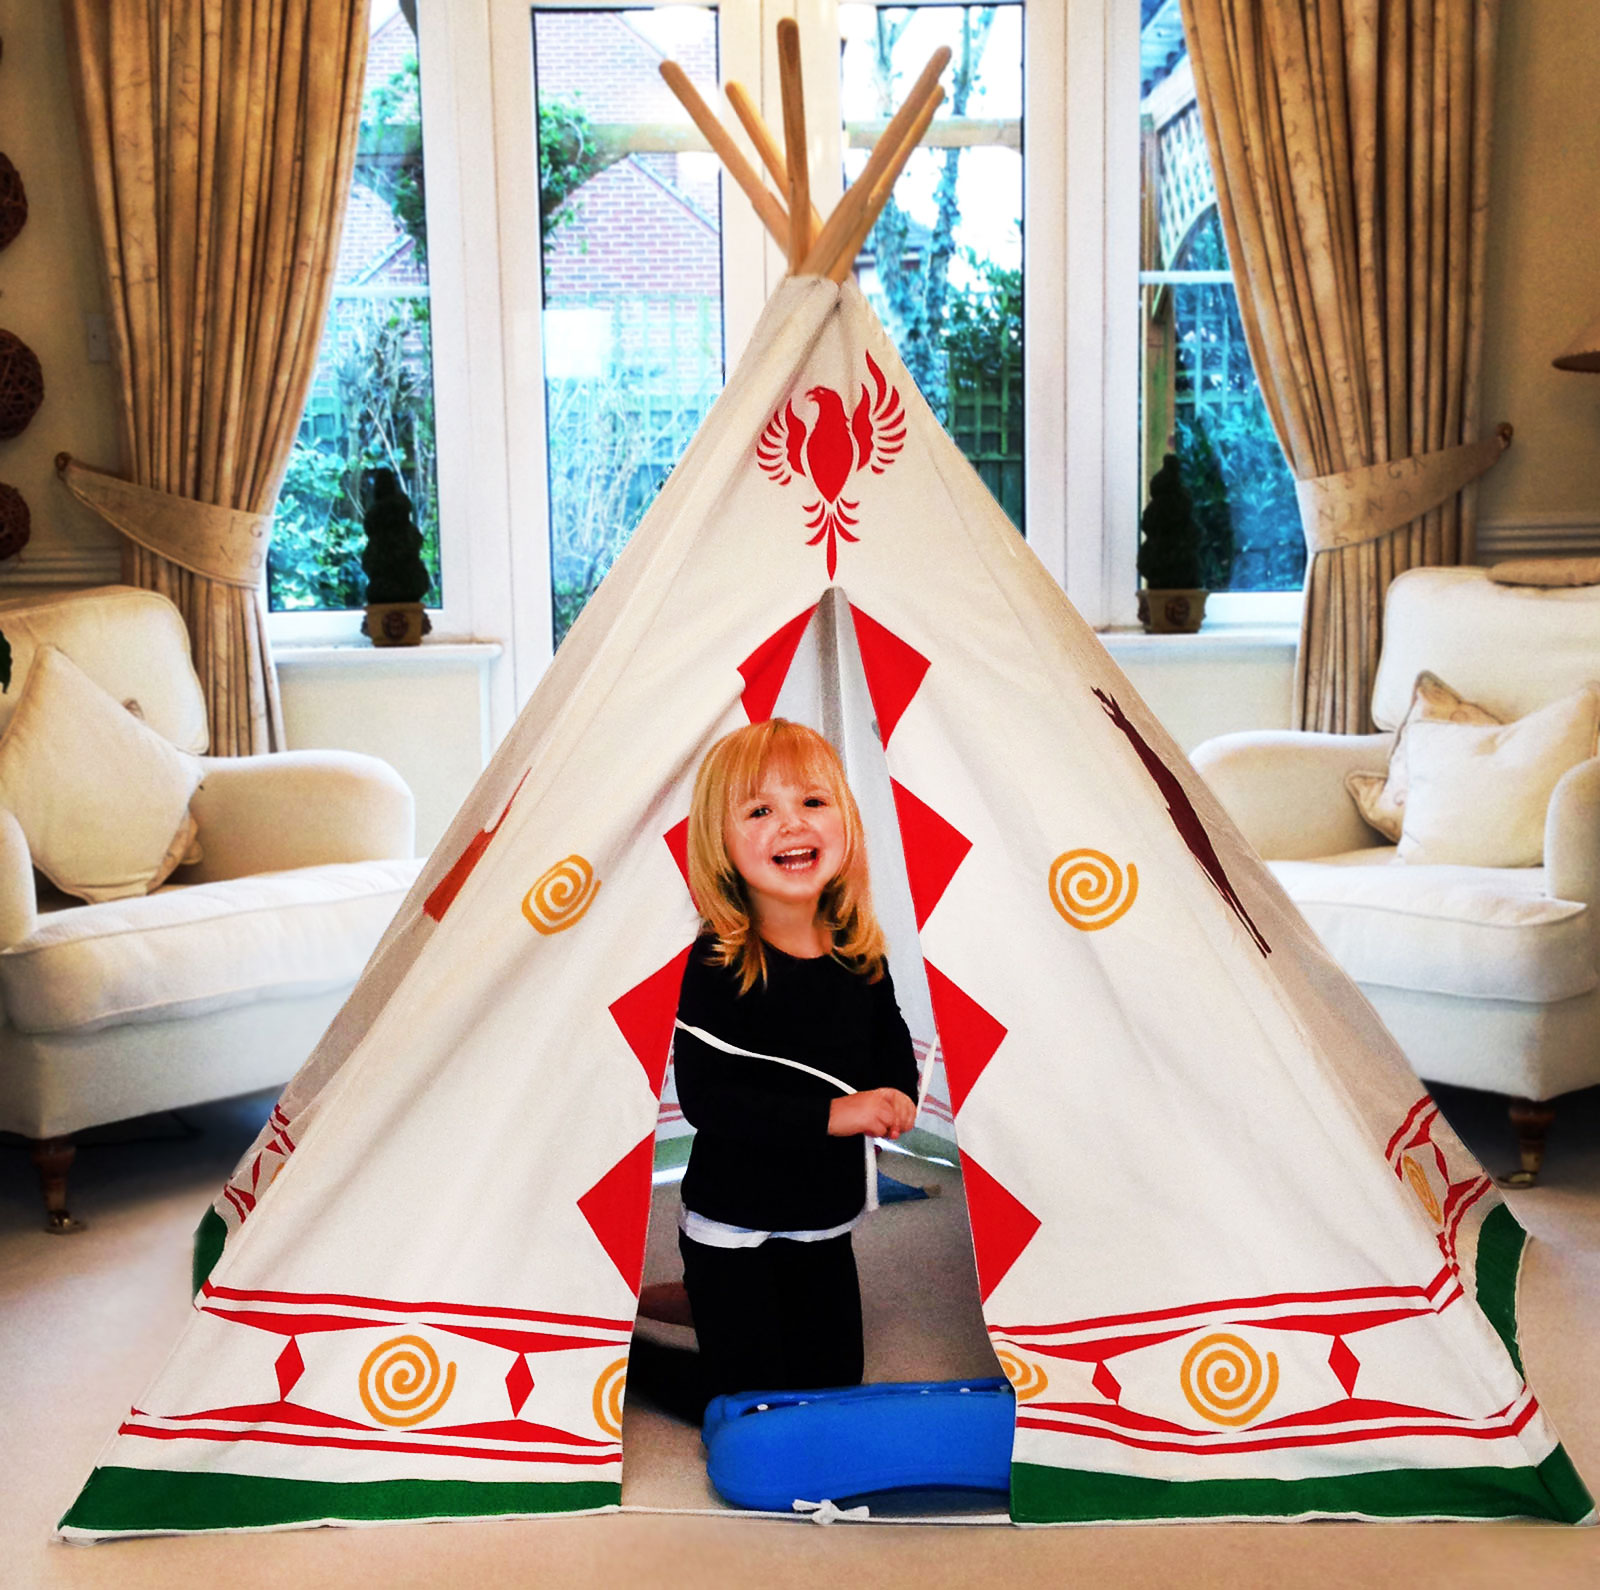 bentley kids spielzeug indianerzelt tipi wigwam f r kinder ebay. Black Bedroom Furniture Sets. Home Design Ideas